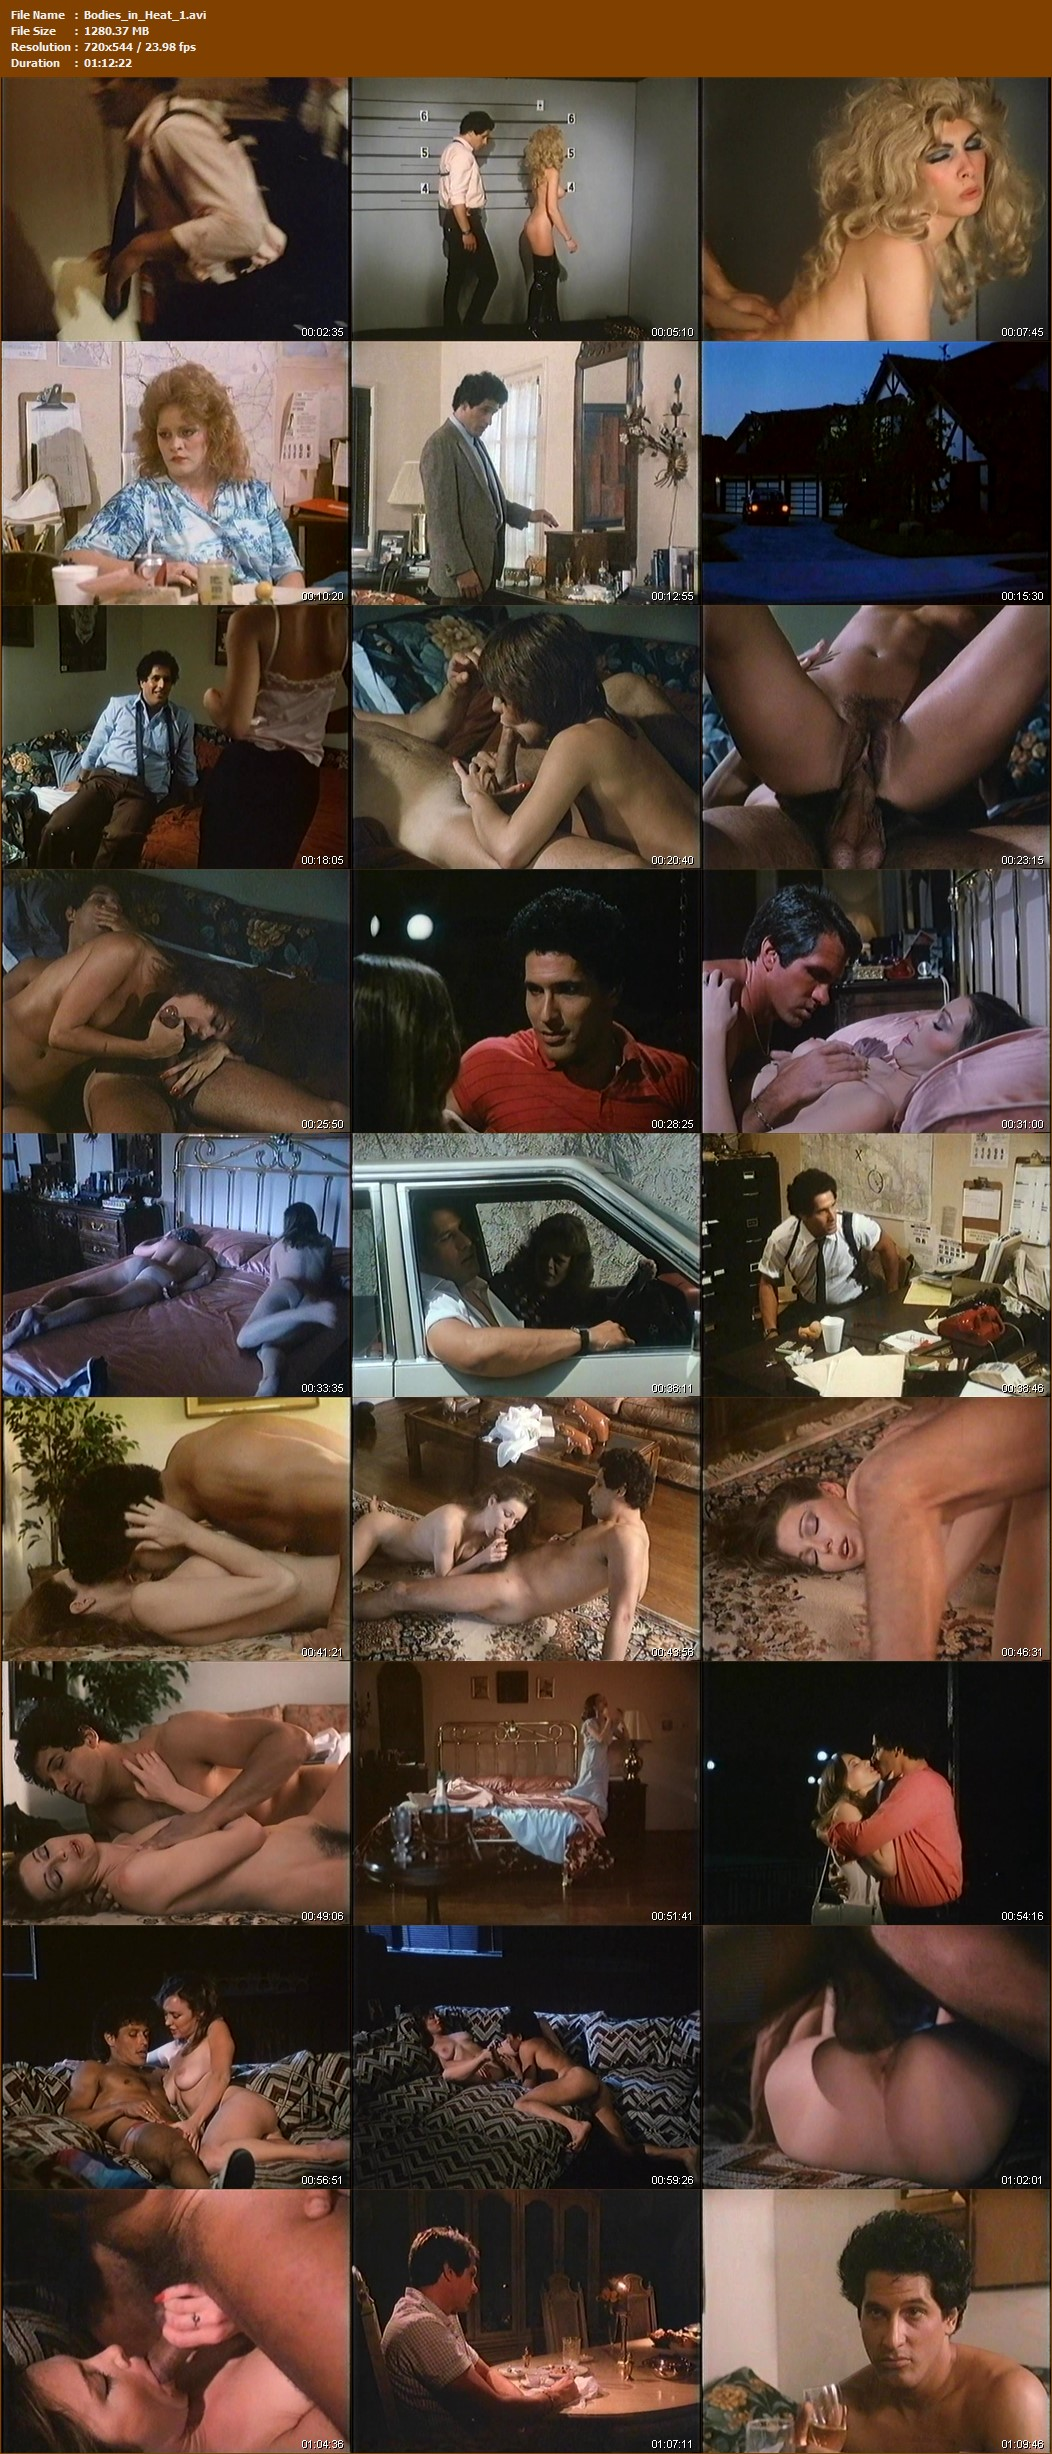 Bodies in heat 2 1989 long nails 4